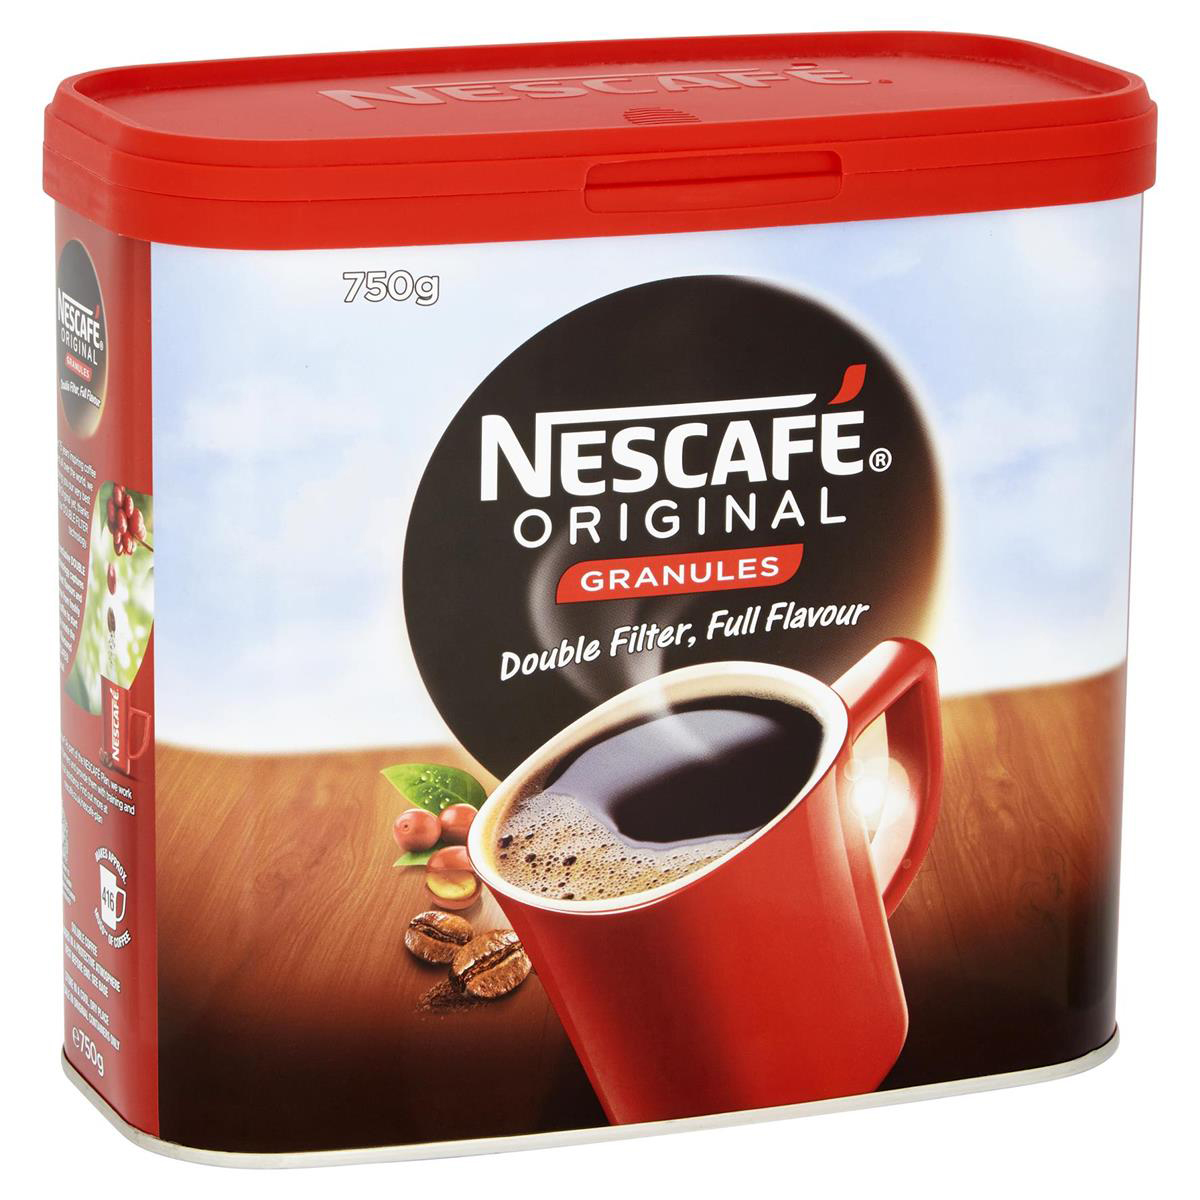 Nescafe Original Instant Coffee Granules Tin 750g Ref 12079880 [Promotion Price] Apr-Jun 2014